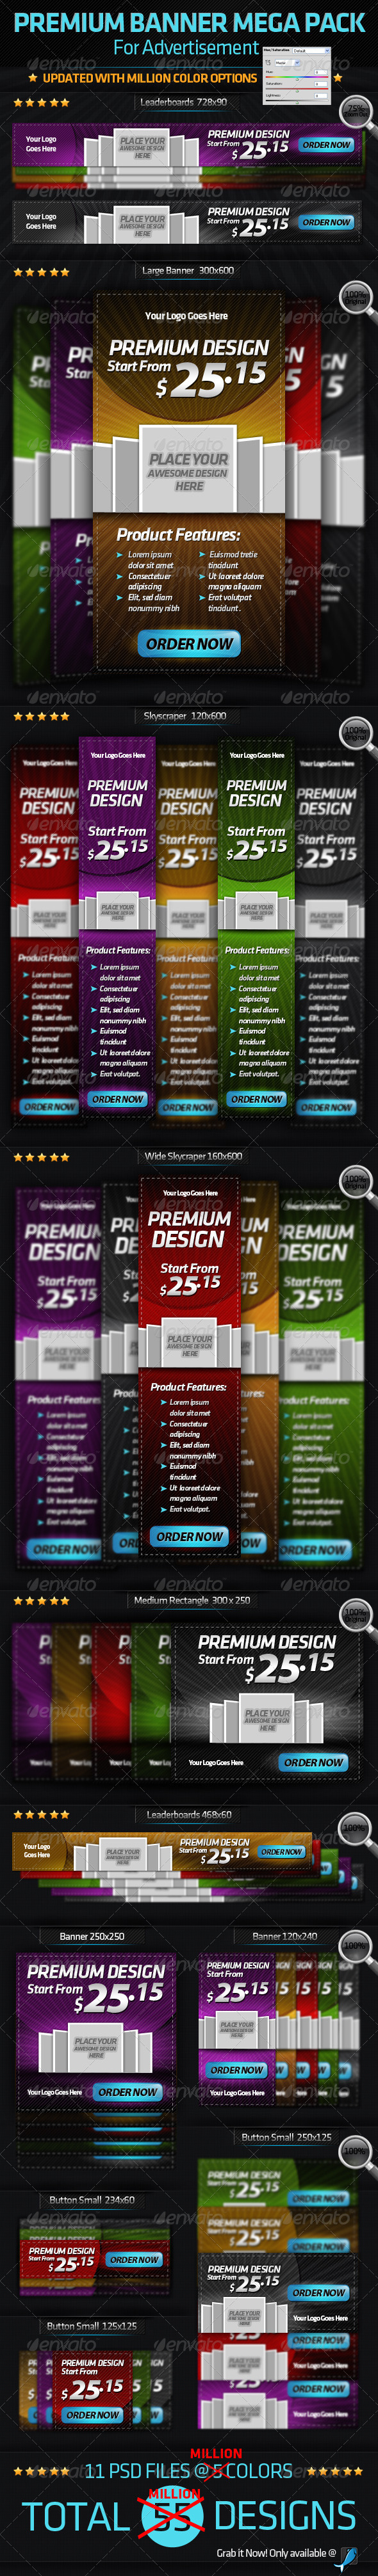 GraphicRiver Premium Banner-Mega Pack-For Online Advertisement 226730